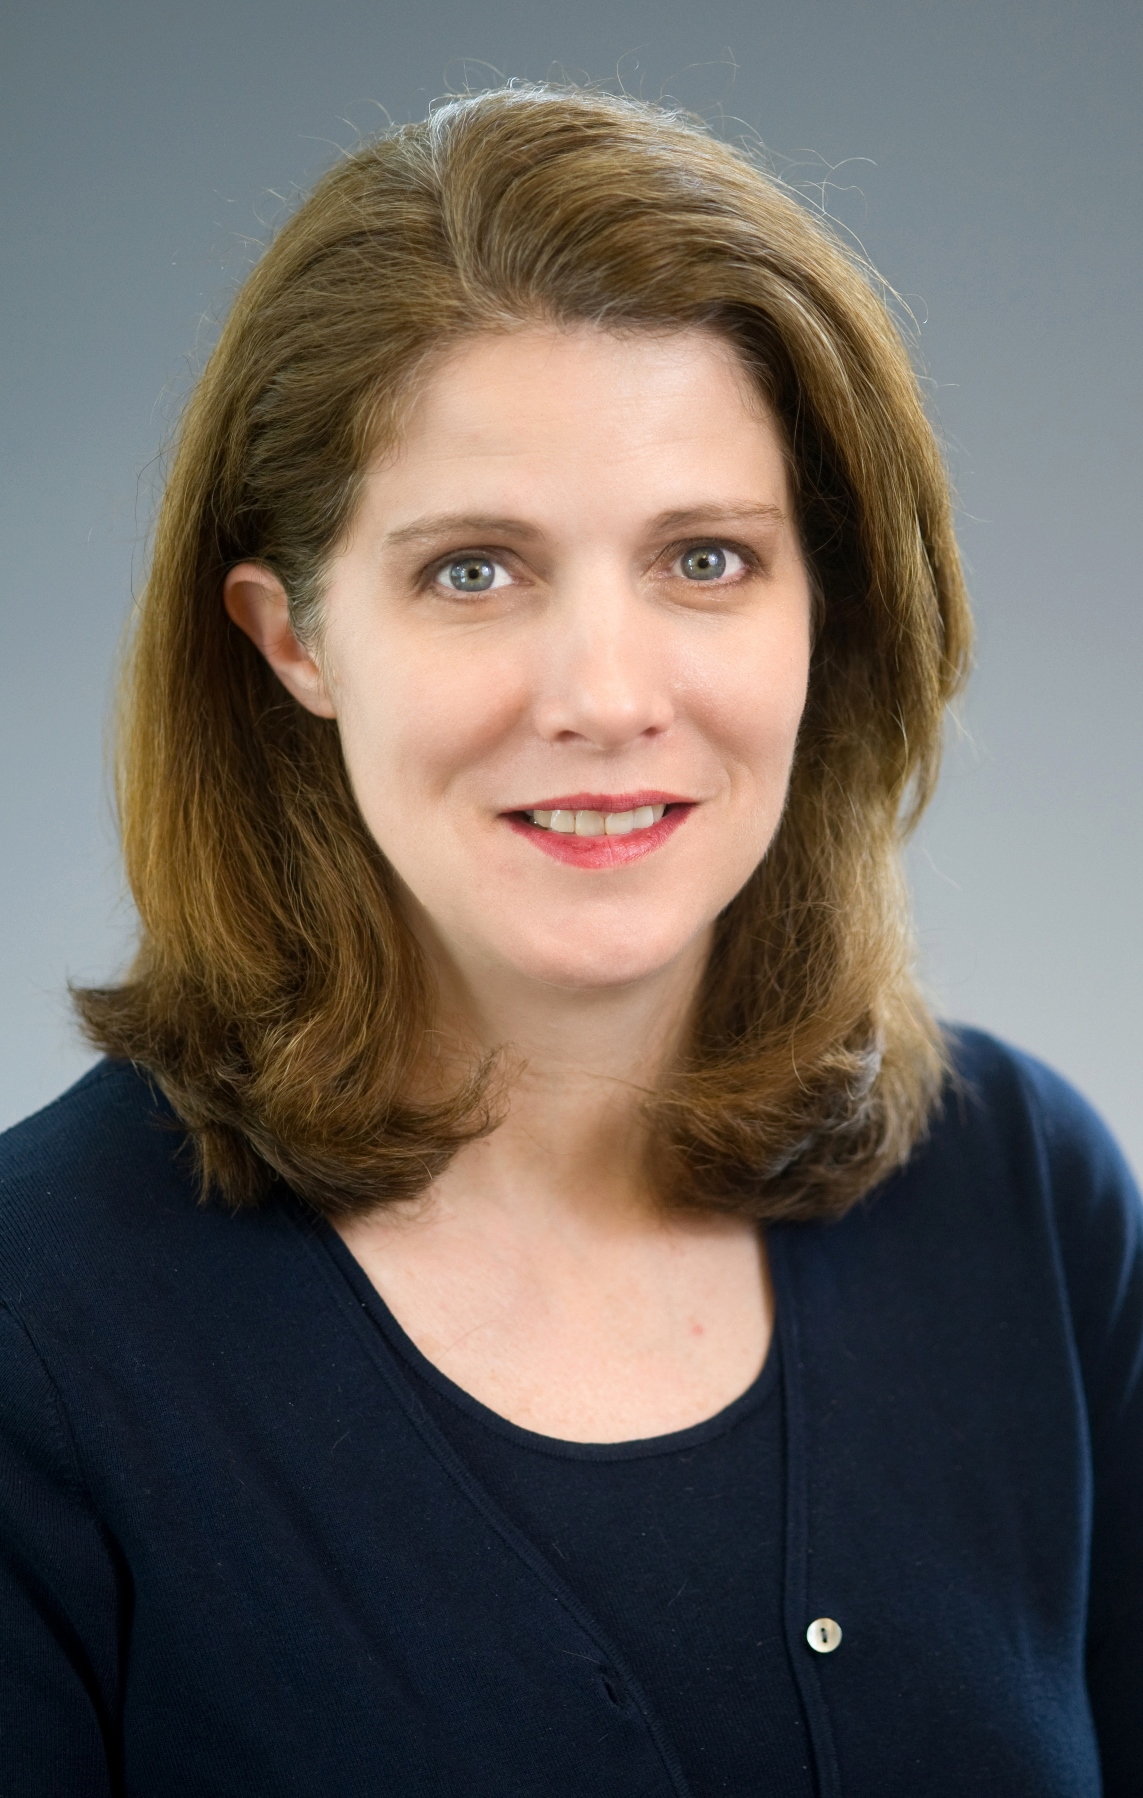 Fairfield's Brody Wilkinson PC has named Norwalk's Heather J. Lange a principal of the firm.